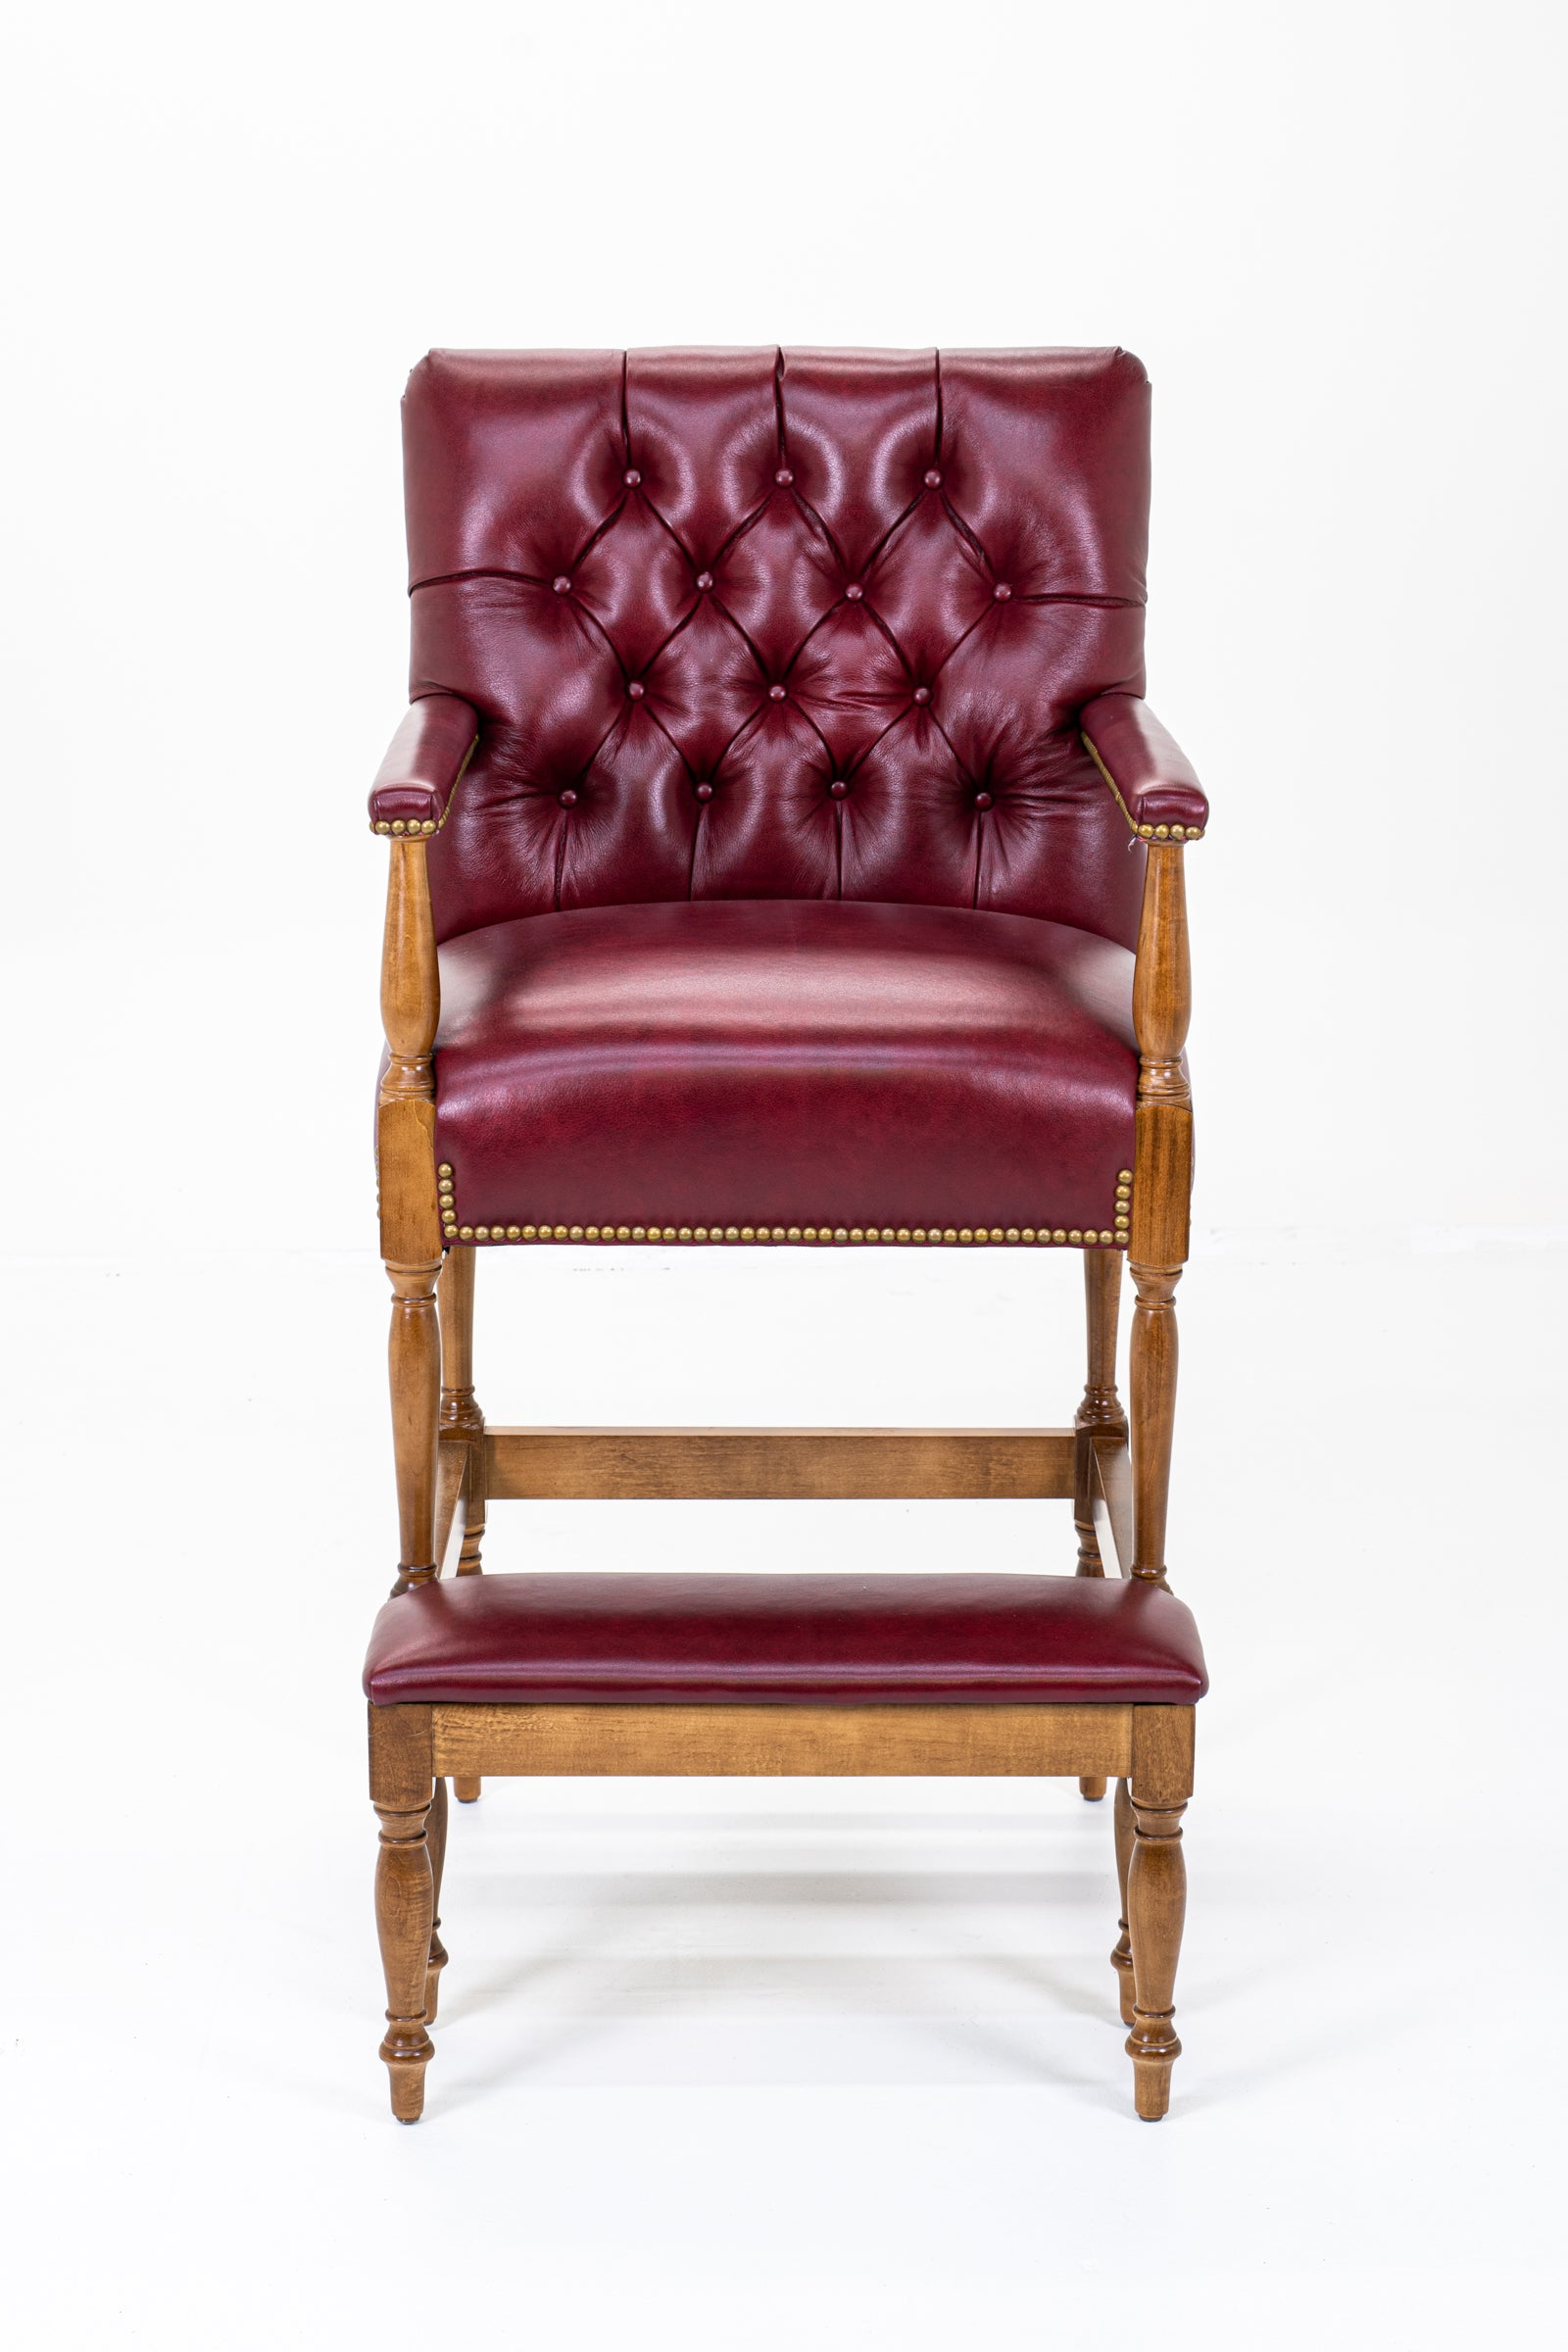 The Billiards Spectator Chair - Blatt Billiards